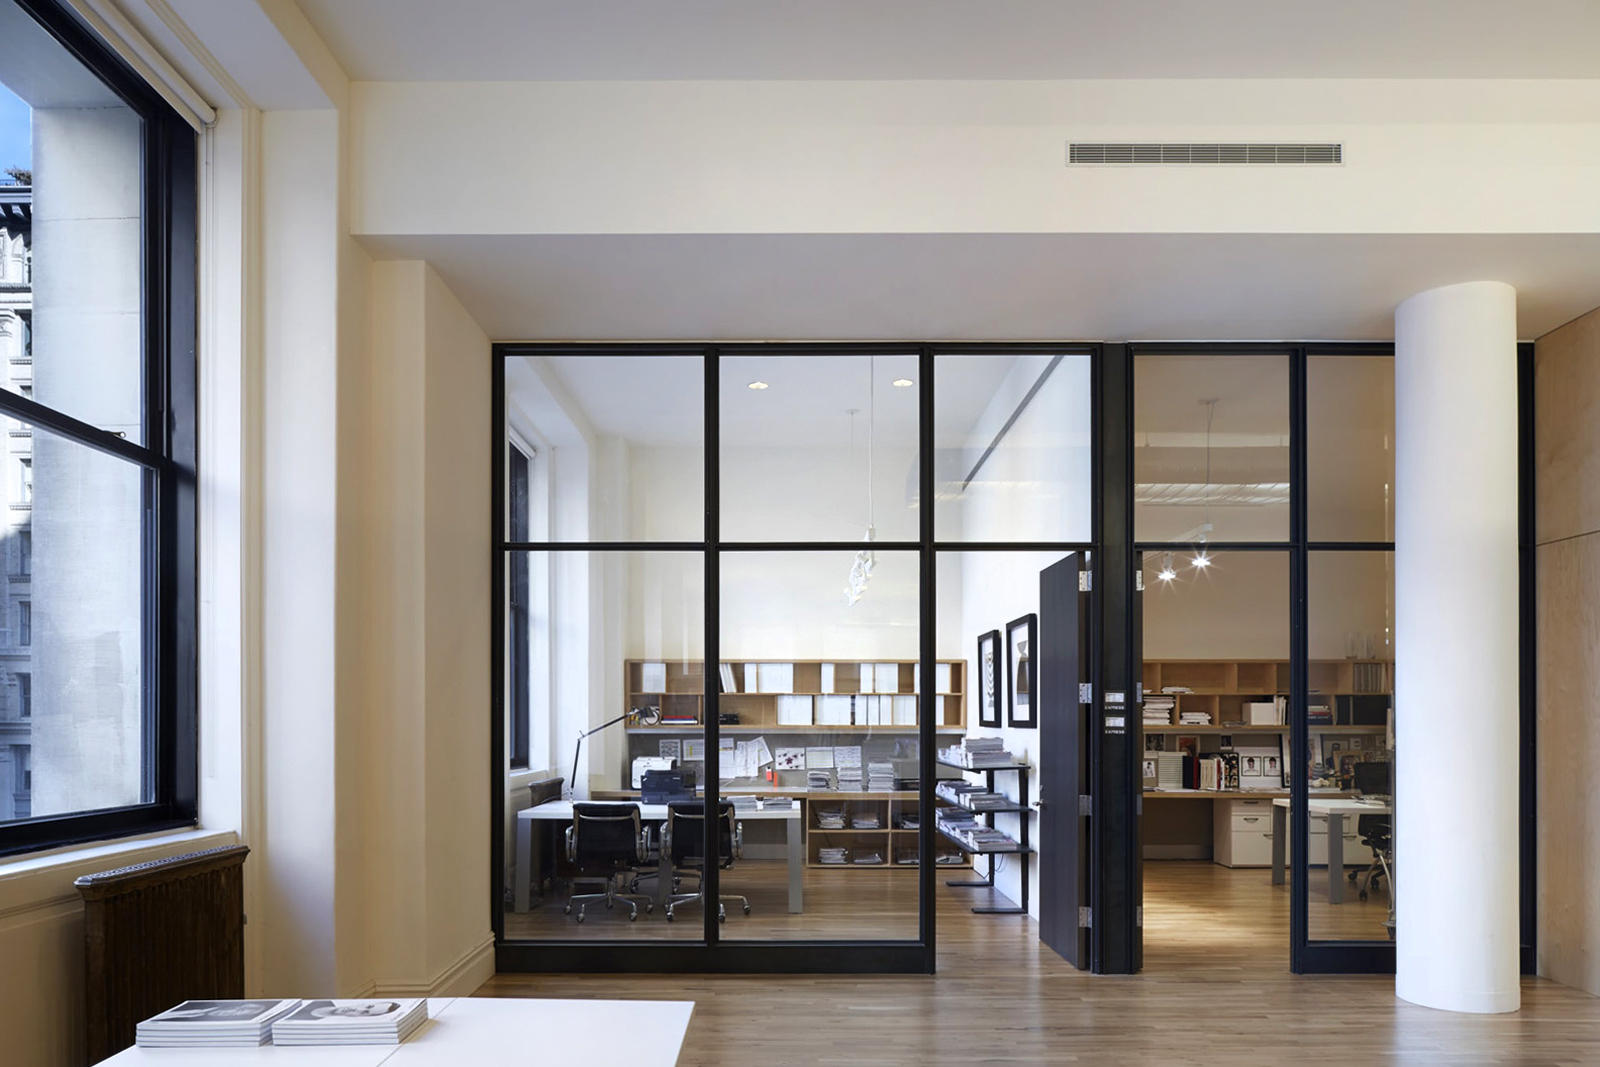 res4-resolution-4-architecture-modern-commercial-express-office-design-studio-interior-07.jpg